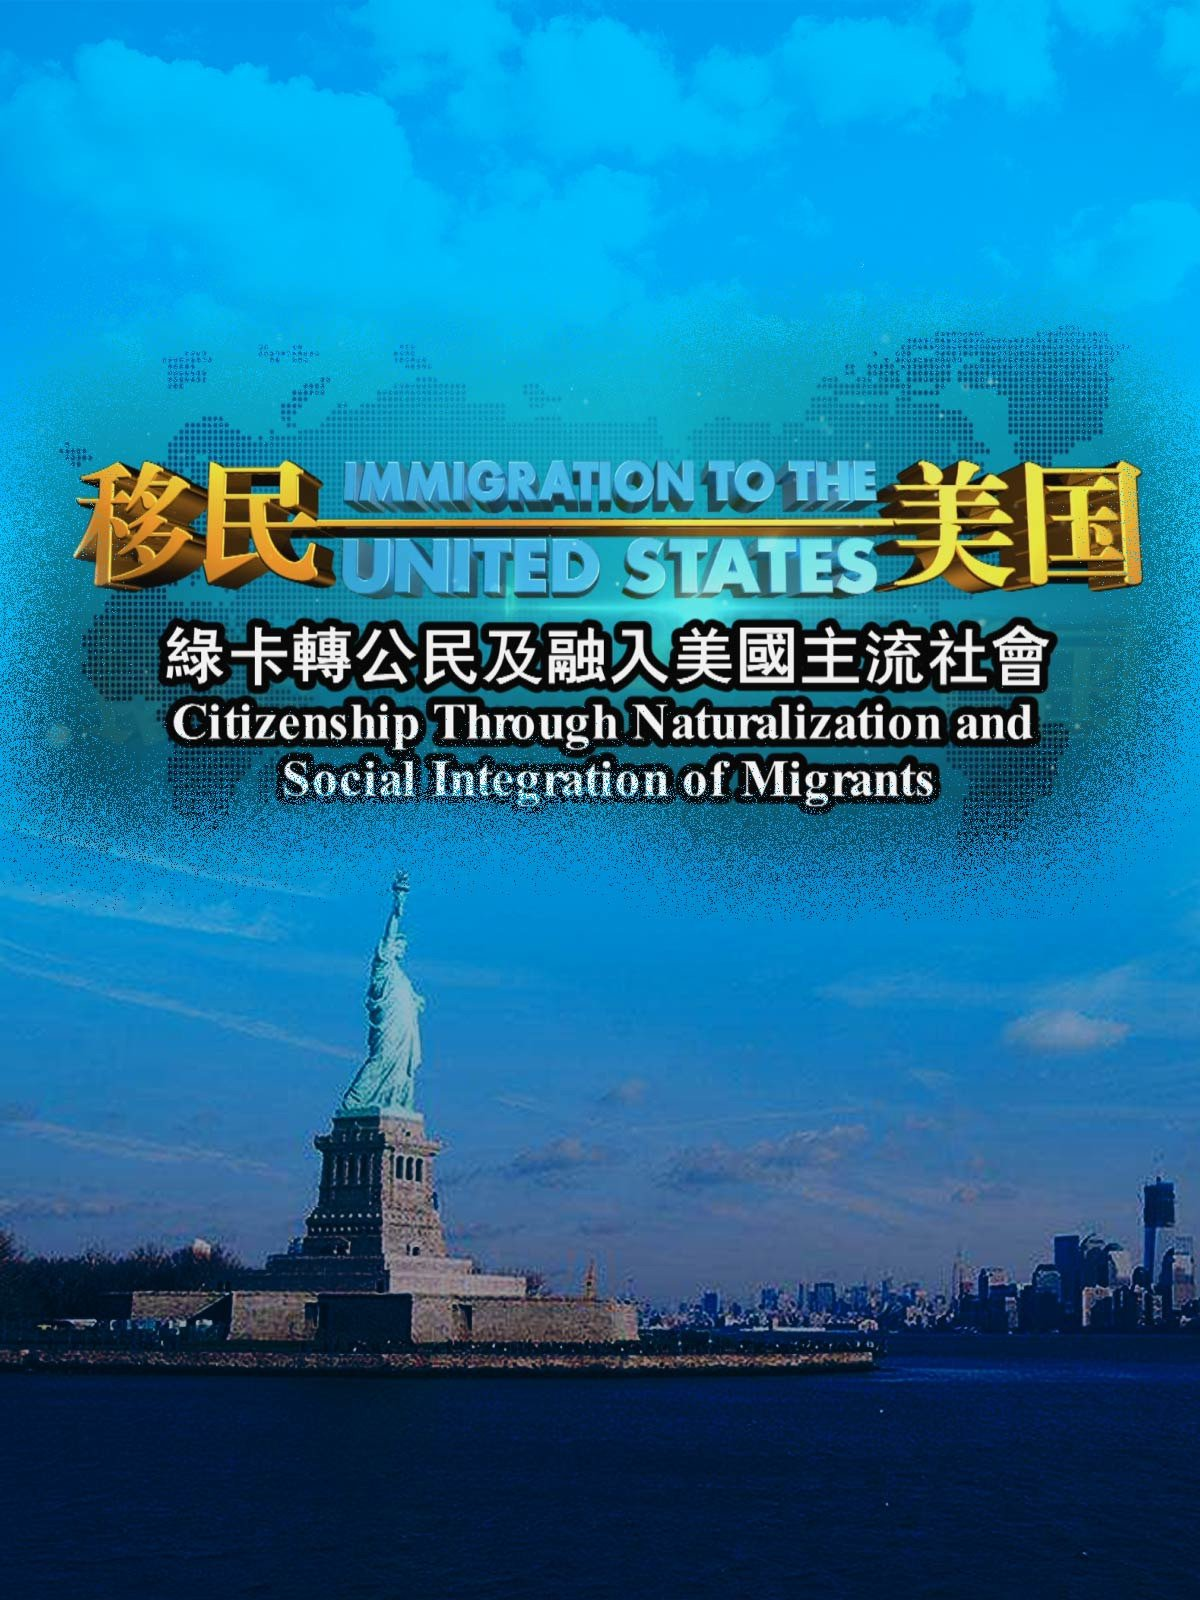 Immigration to the United States-Citizenship Through Naturalization and Social Integration of Migrants